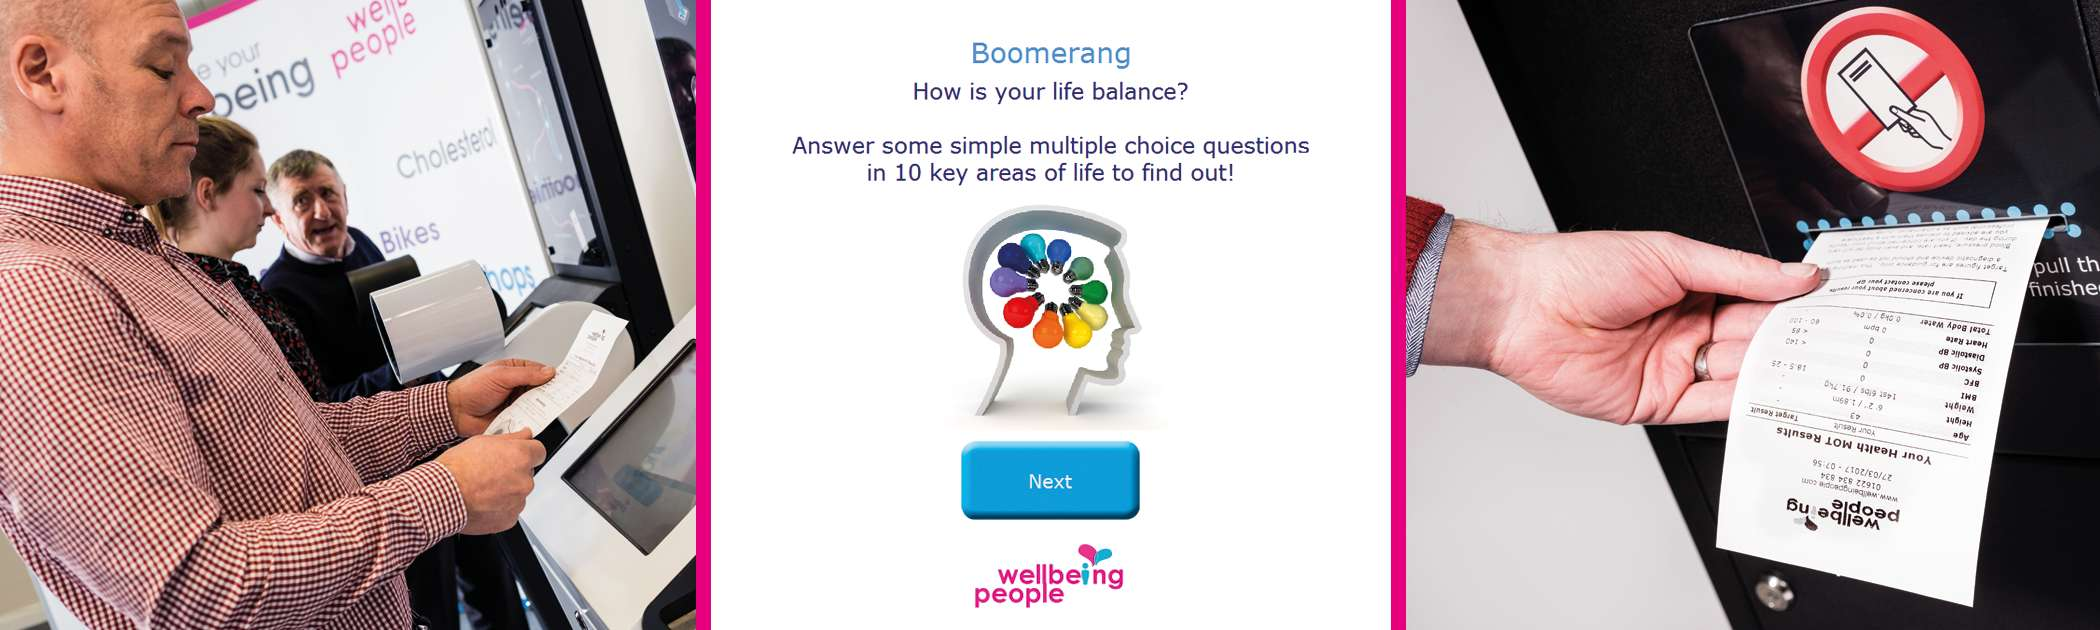 Boomerang Life Balance Application